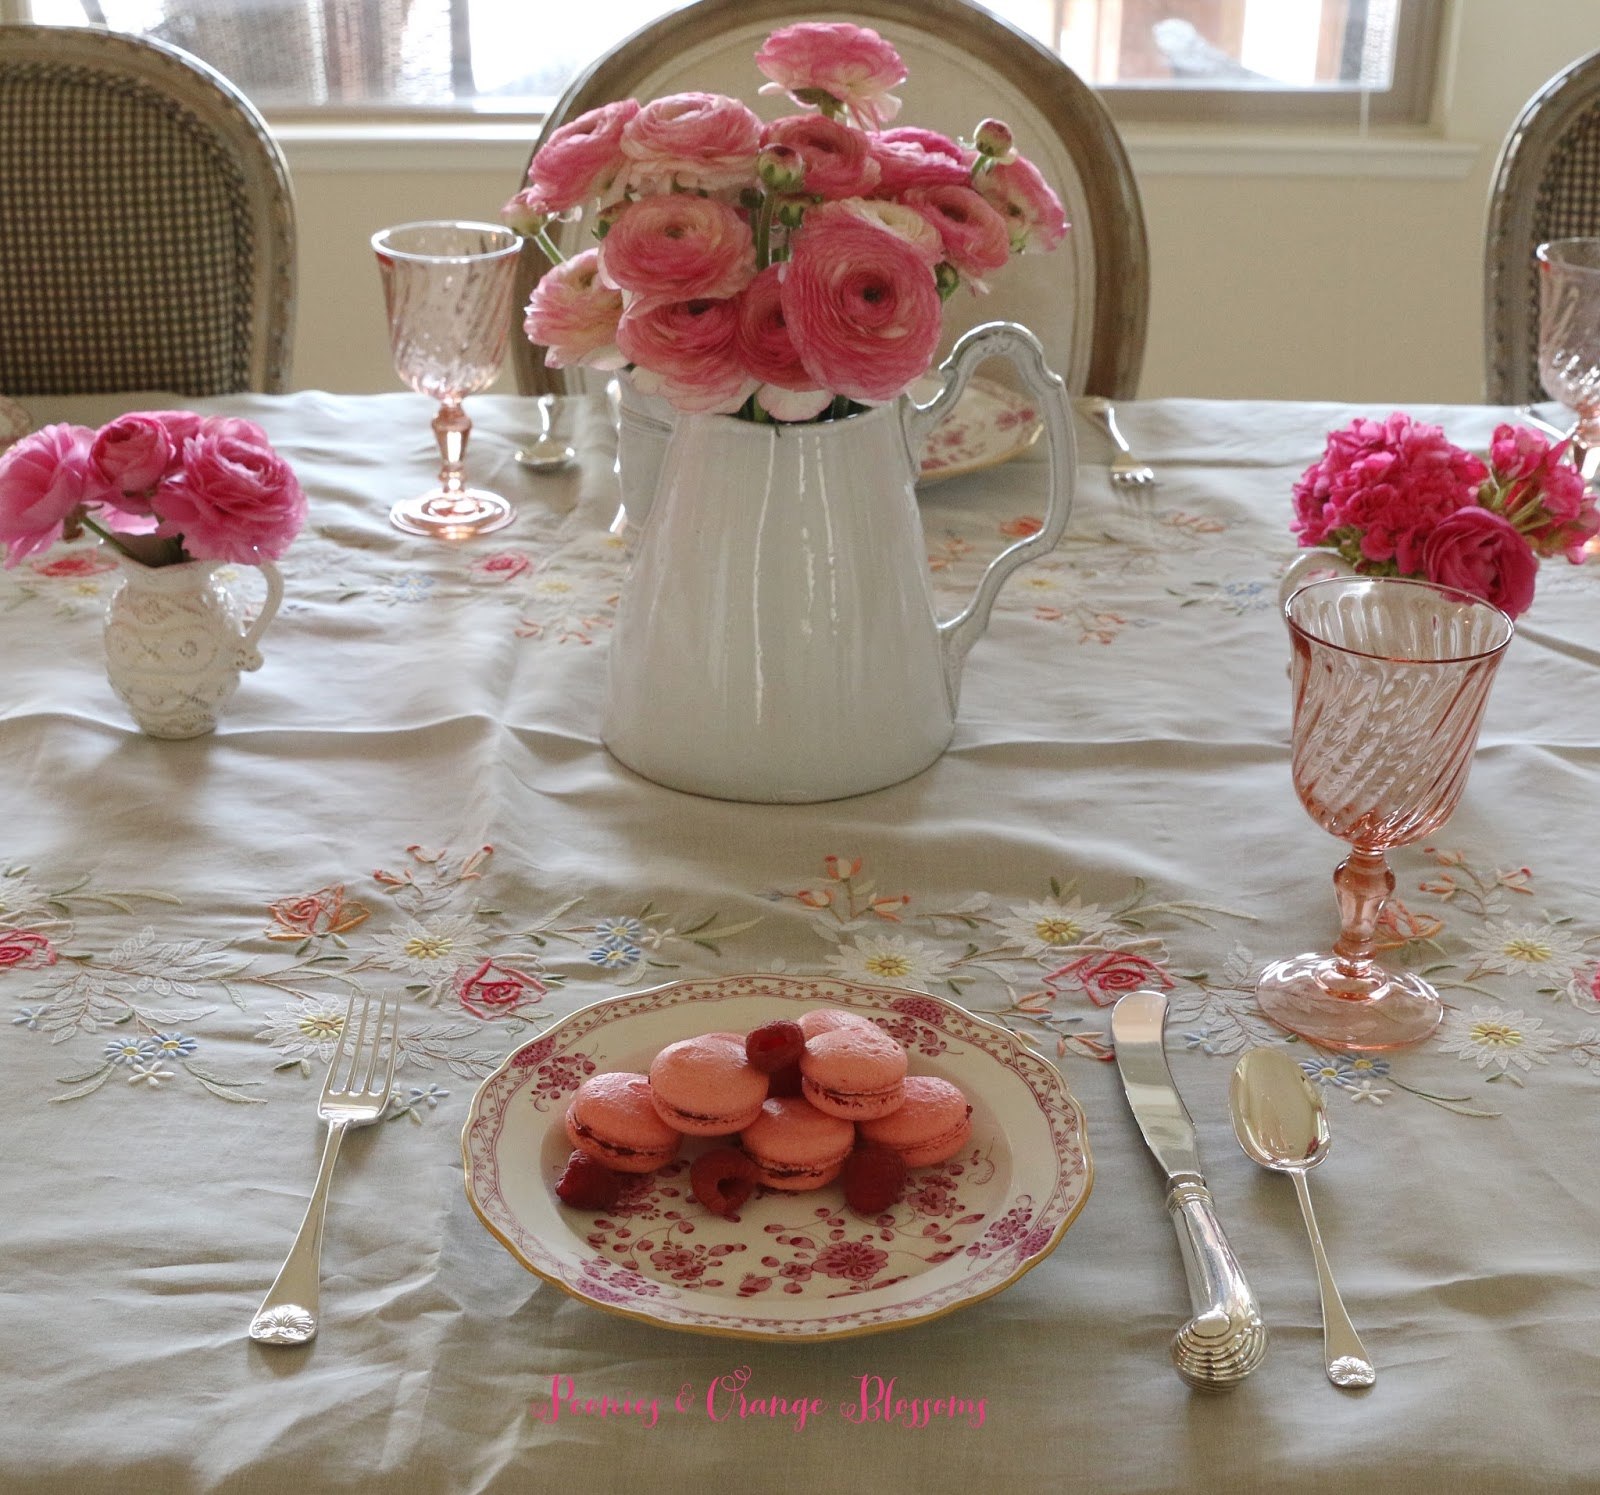 French table setting with Meissen plates, Astier de Villate pitcher, and pink ranunculus